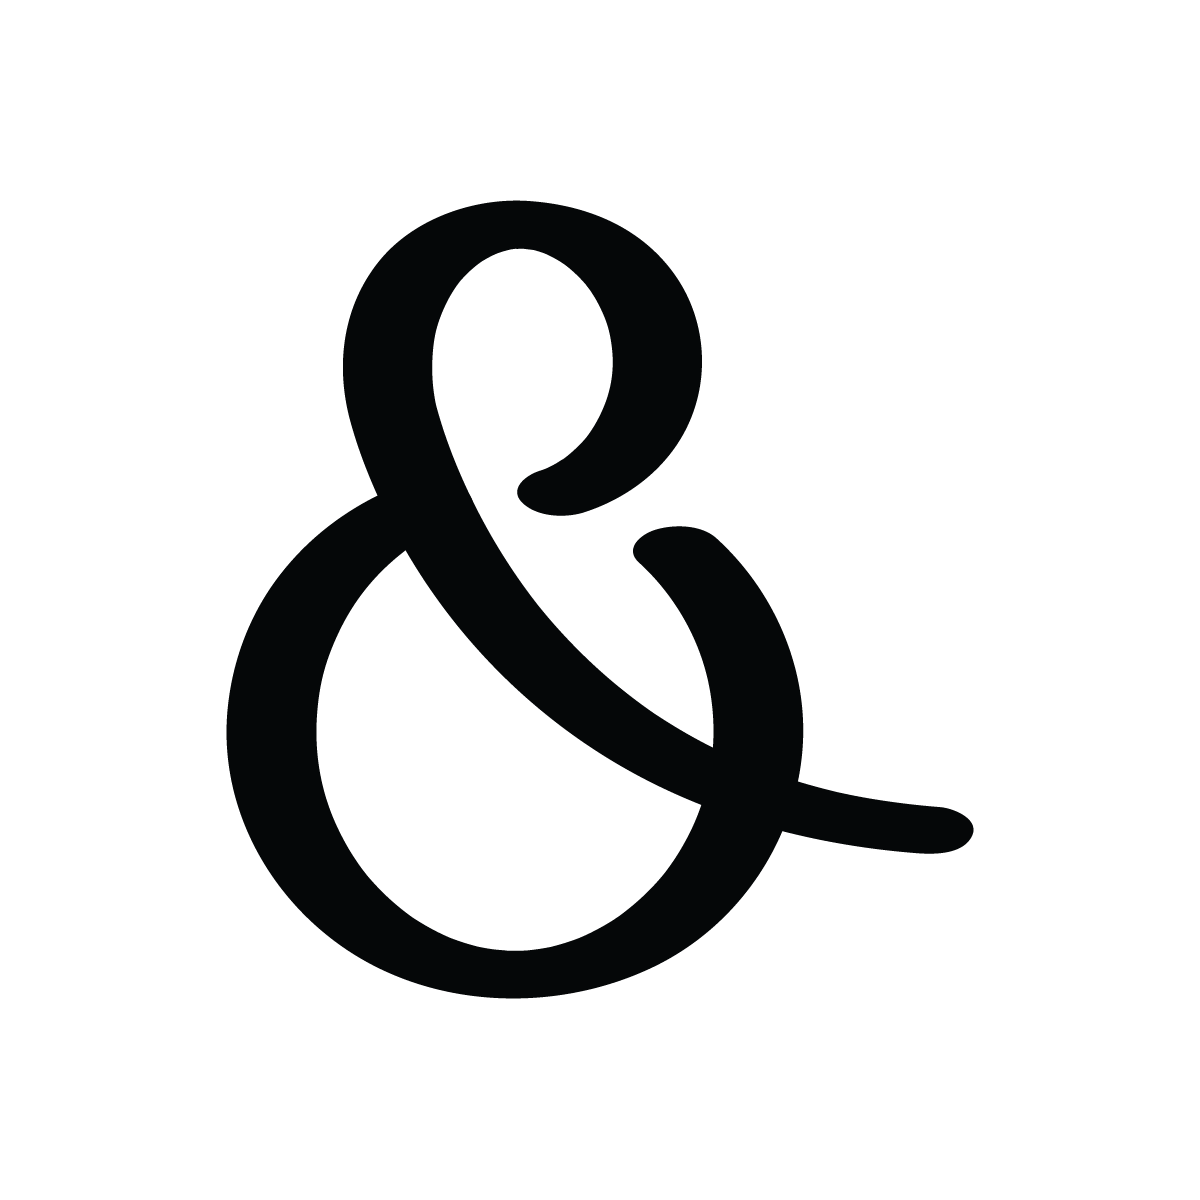 Ampersand pictures to pin on pinterest pinsdaddy Calligraphy and sign